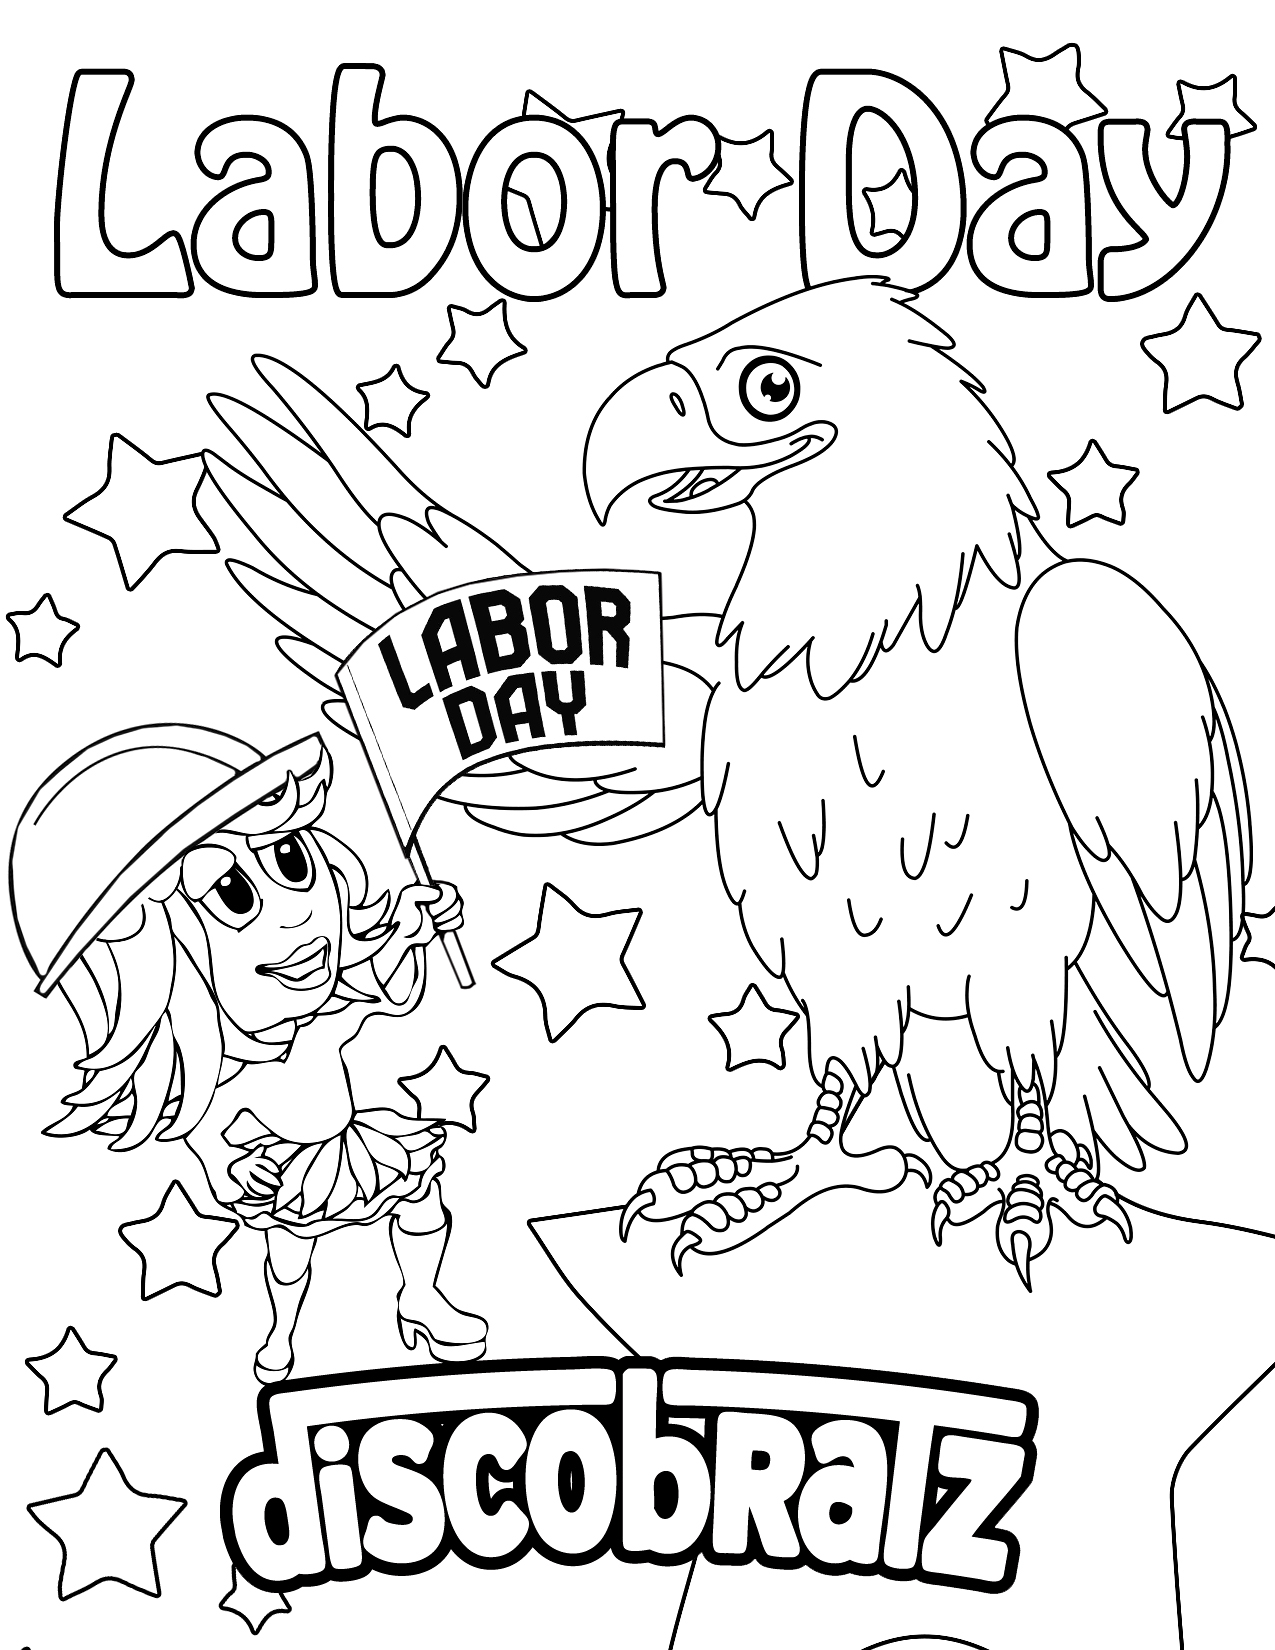 Labor Day Coloring Pages To Download And Print For Free